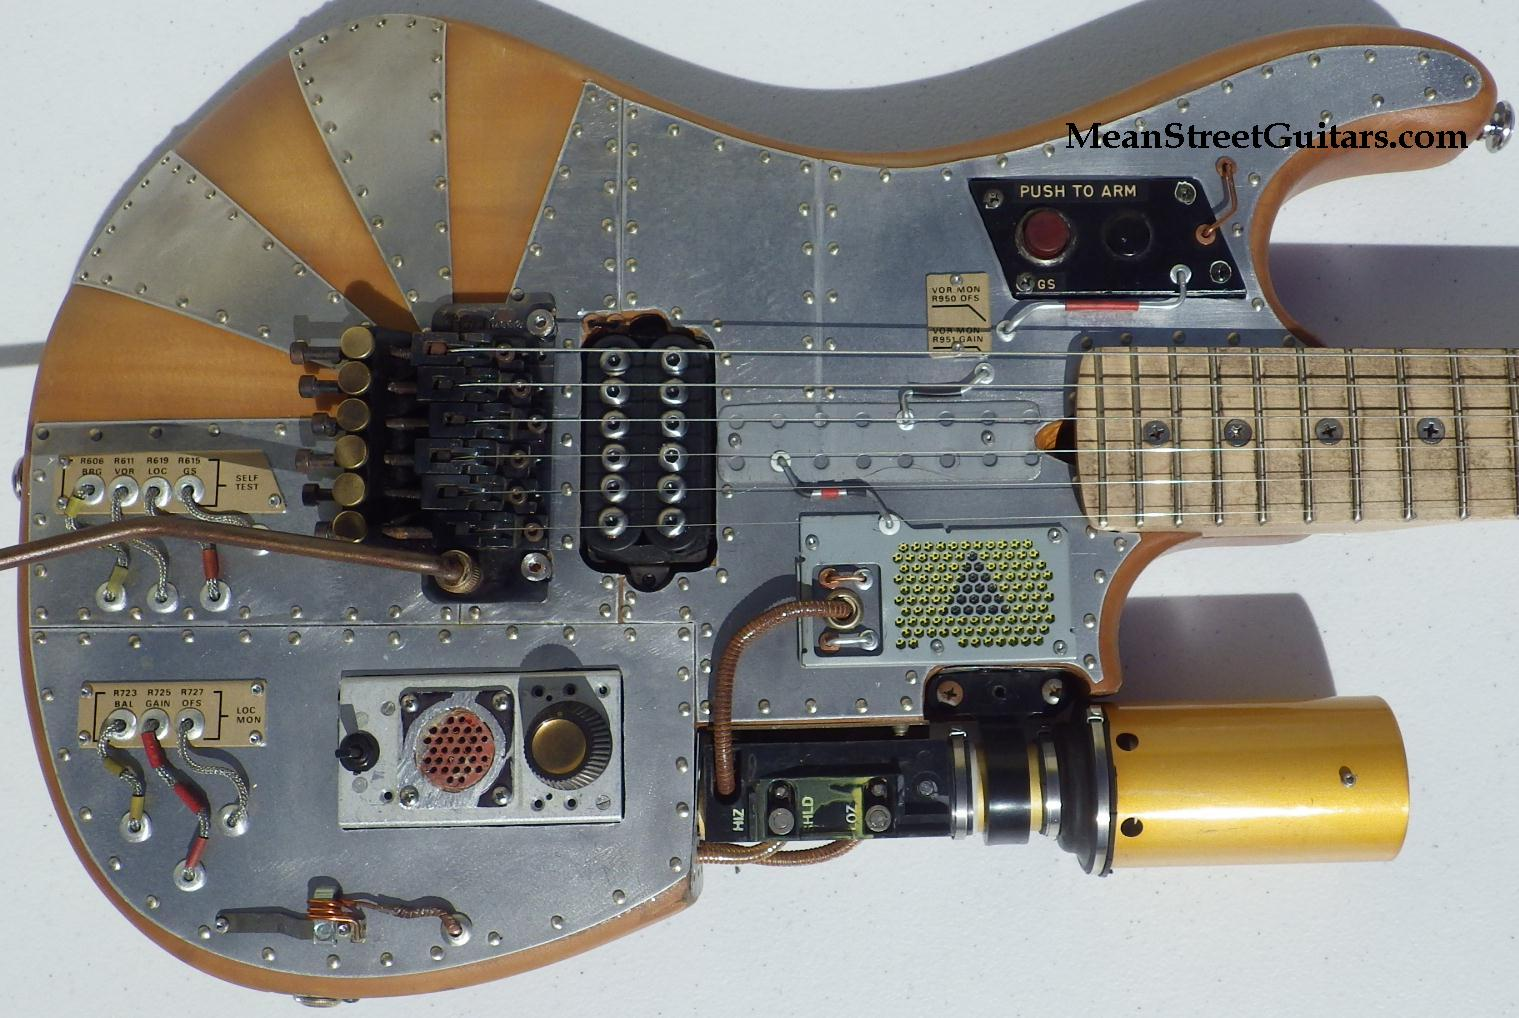 Mean Street Guitars Industrial Compensator pic 2.jpg